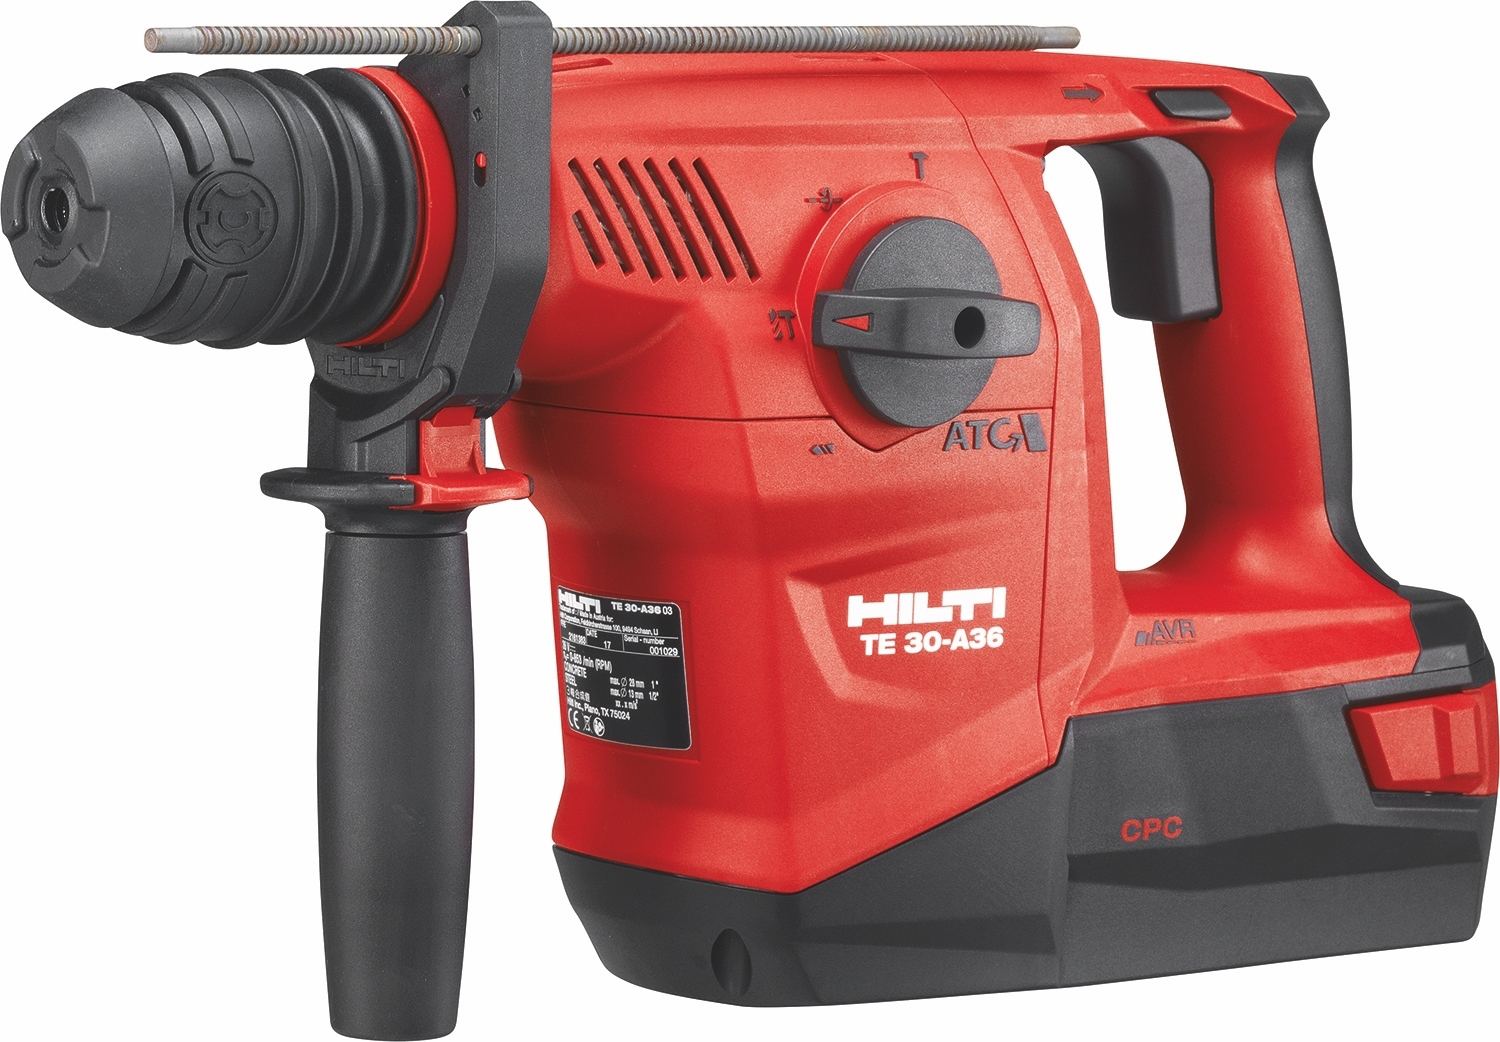 hilti unveils high efficiency te 30 a36 te 6 a36 cordless. Black Bedroom Furniture Sets. Home Design Ideas